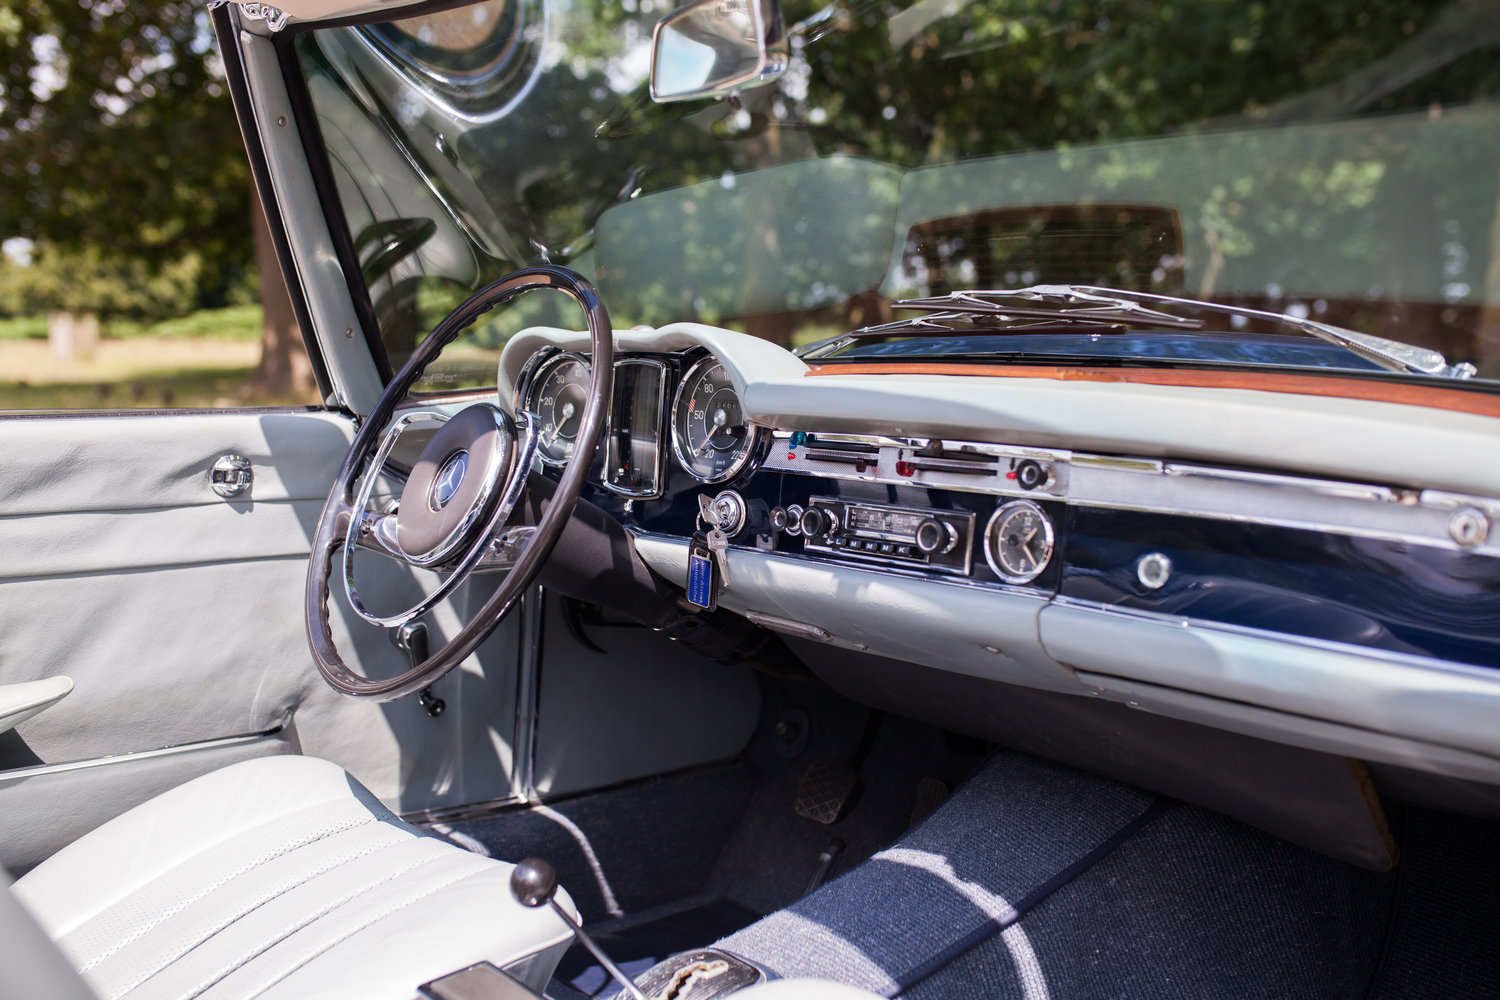 1967 Mercedes-Benz 250SL Pagoda - SOLD, Another Wanted!! For Sale (picture 5 of 6)